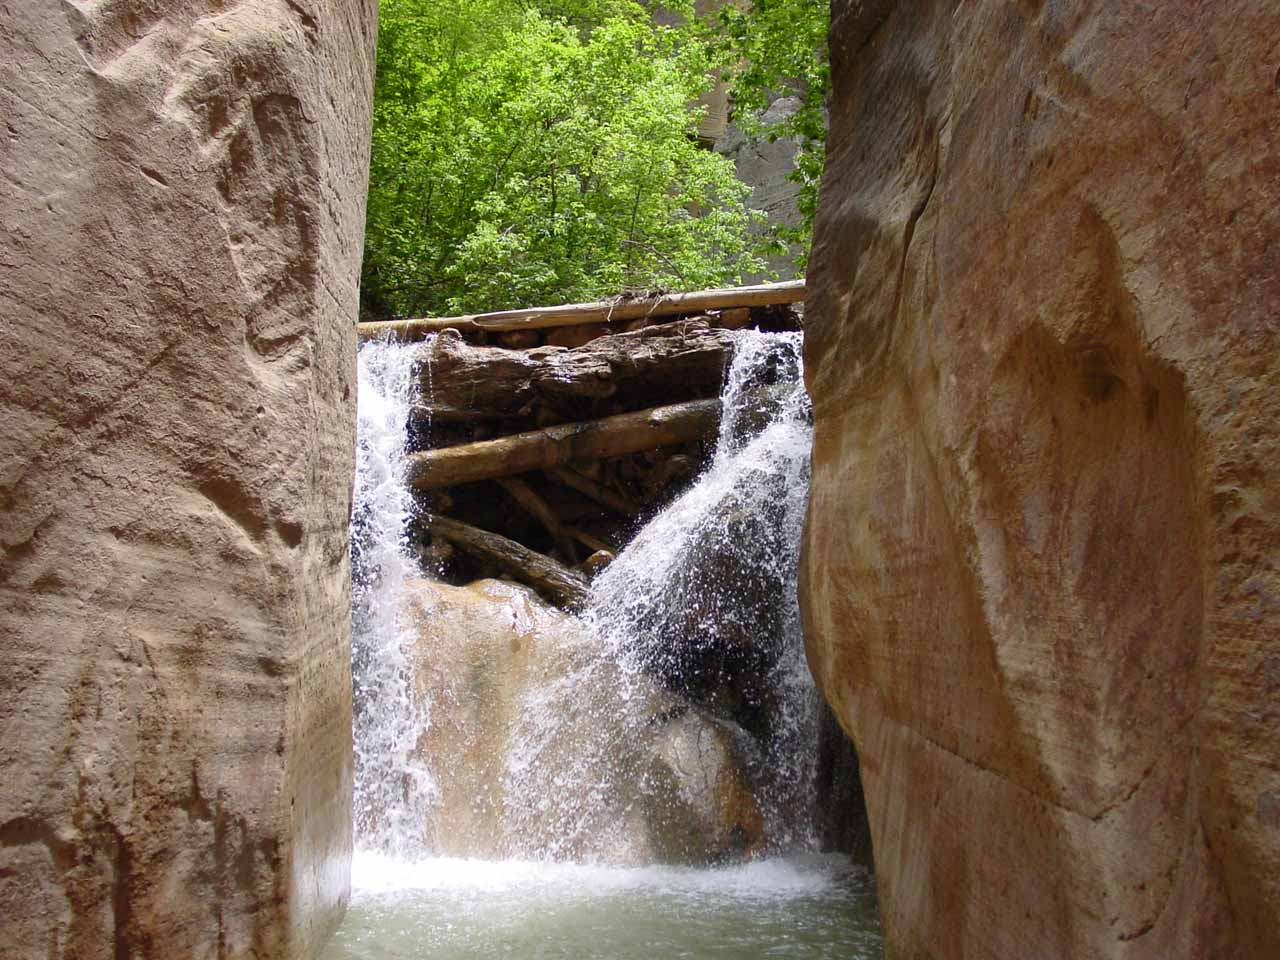 A 12ft waterfall obstacle comprised of a logjam and rocks in the Upper Narrows